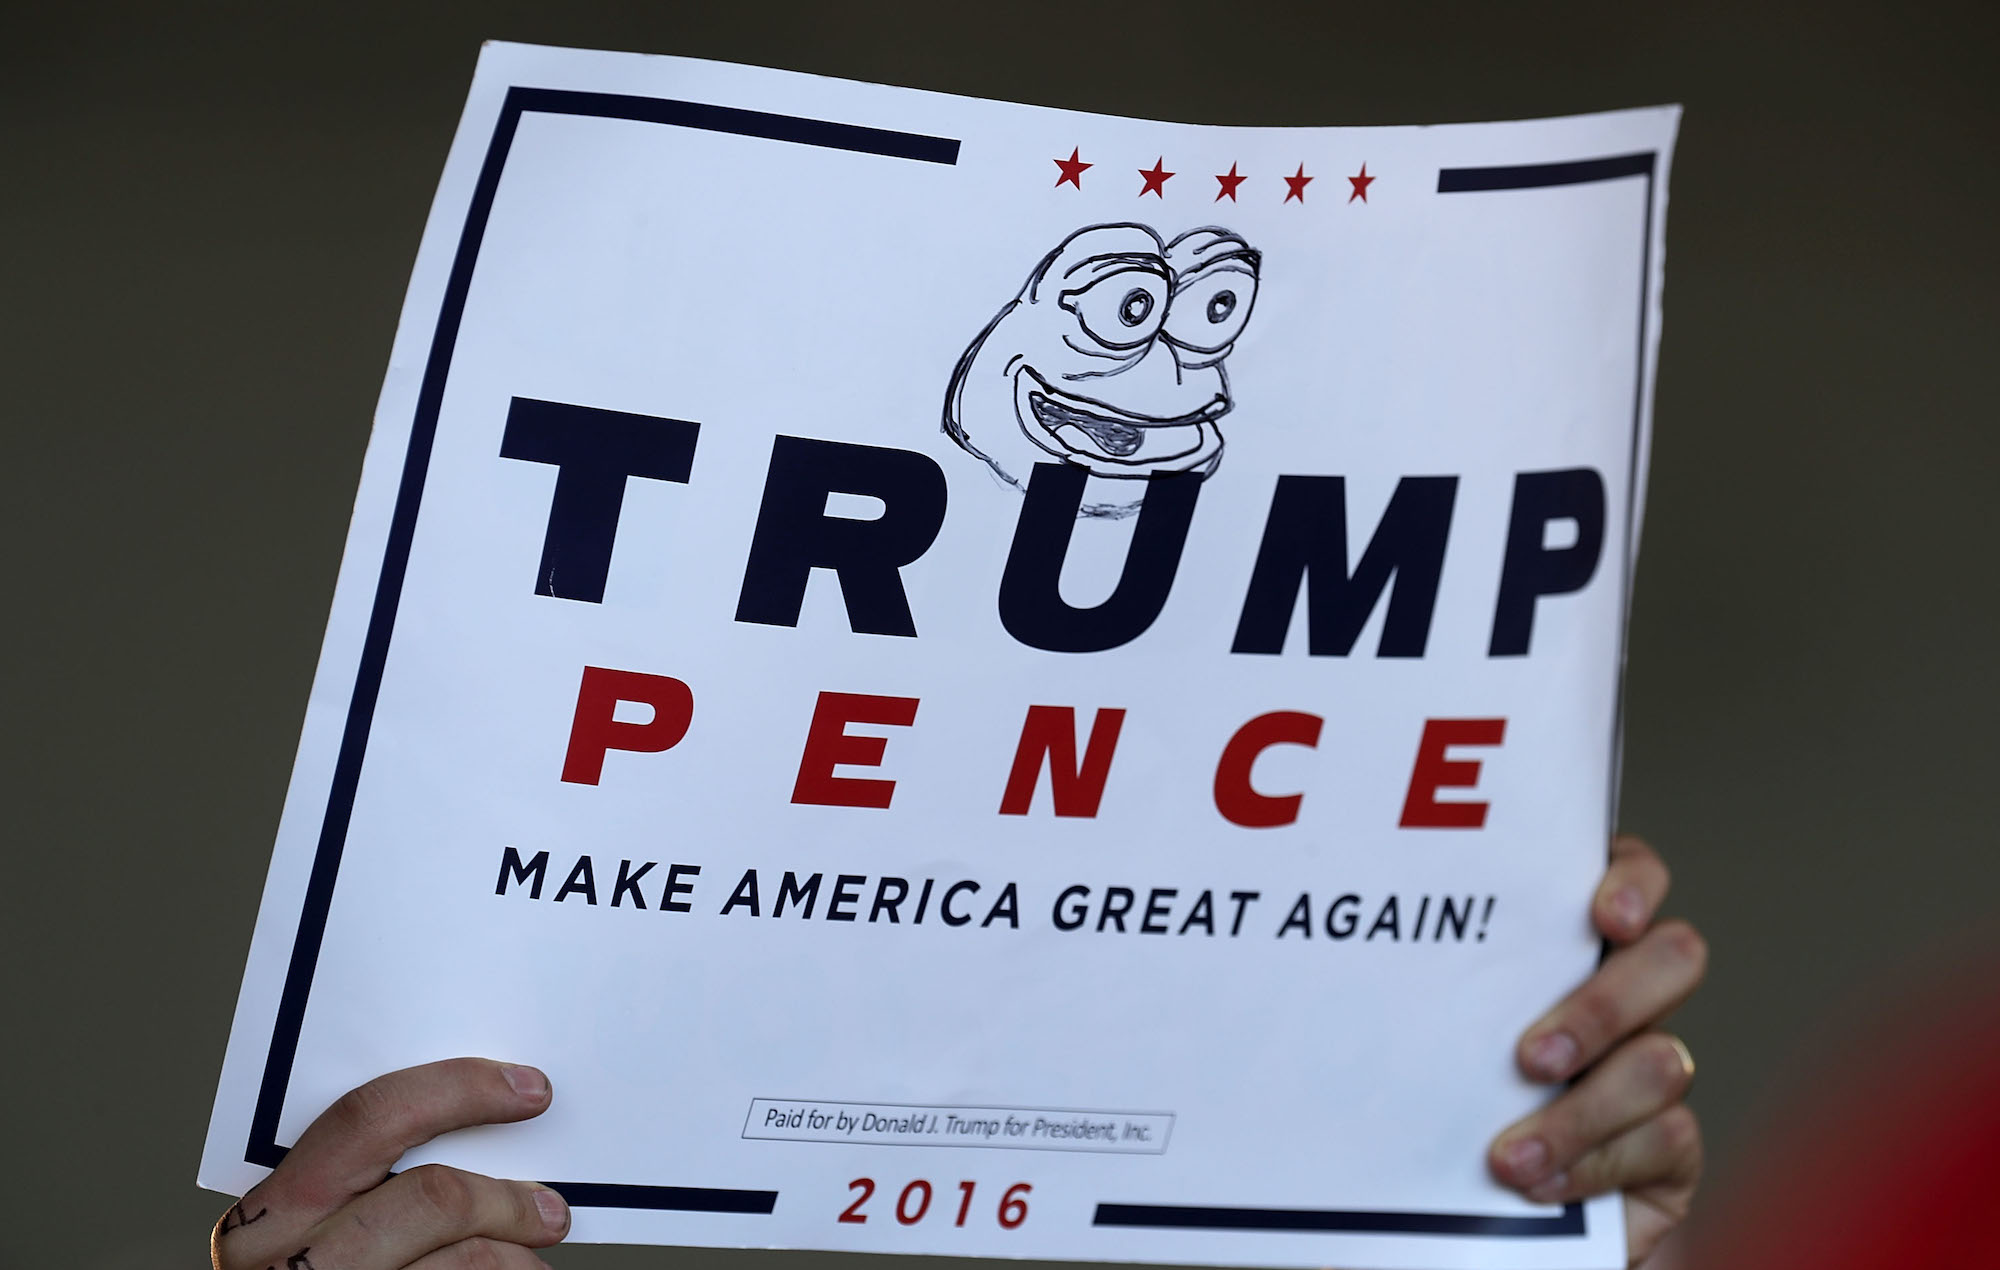 Trump sign Pepe The Frog